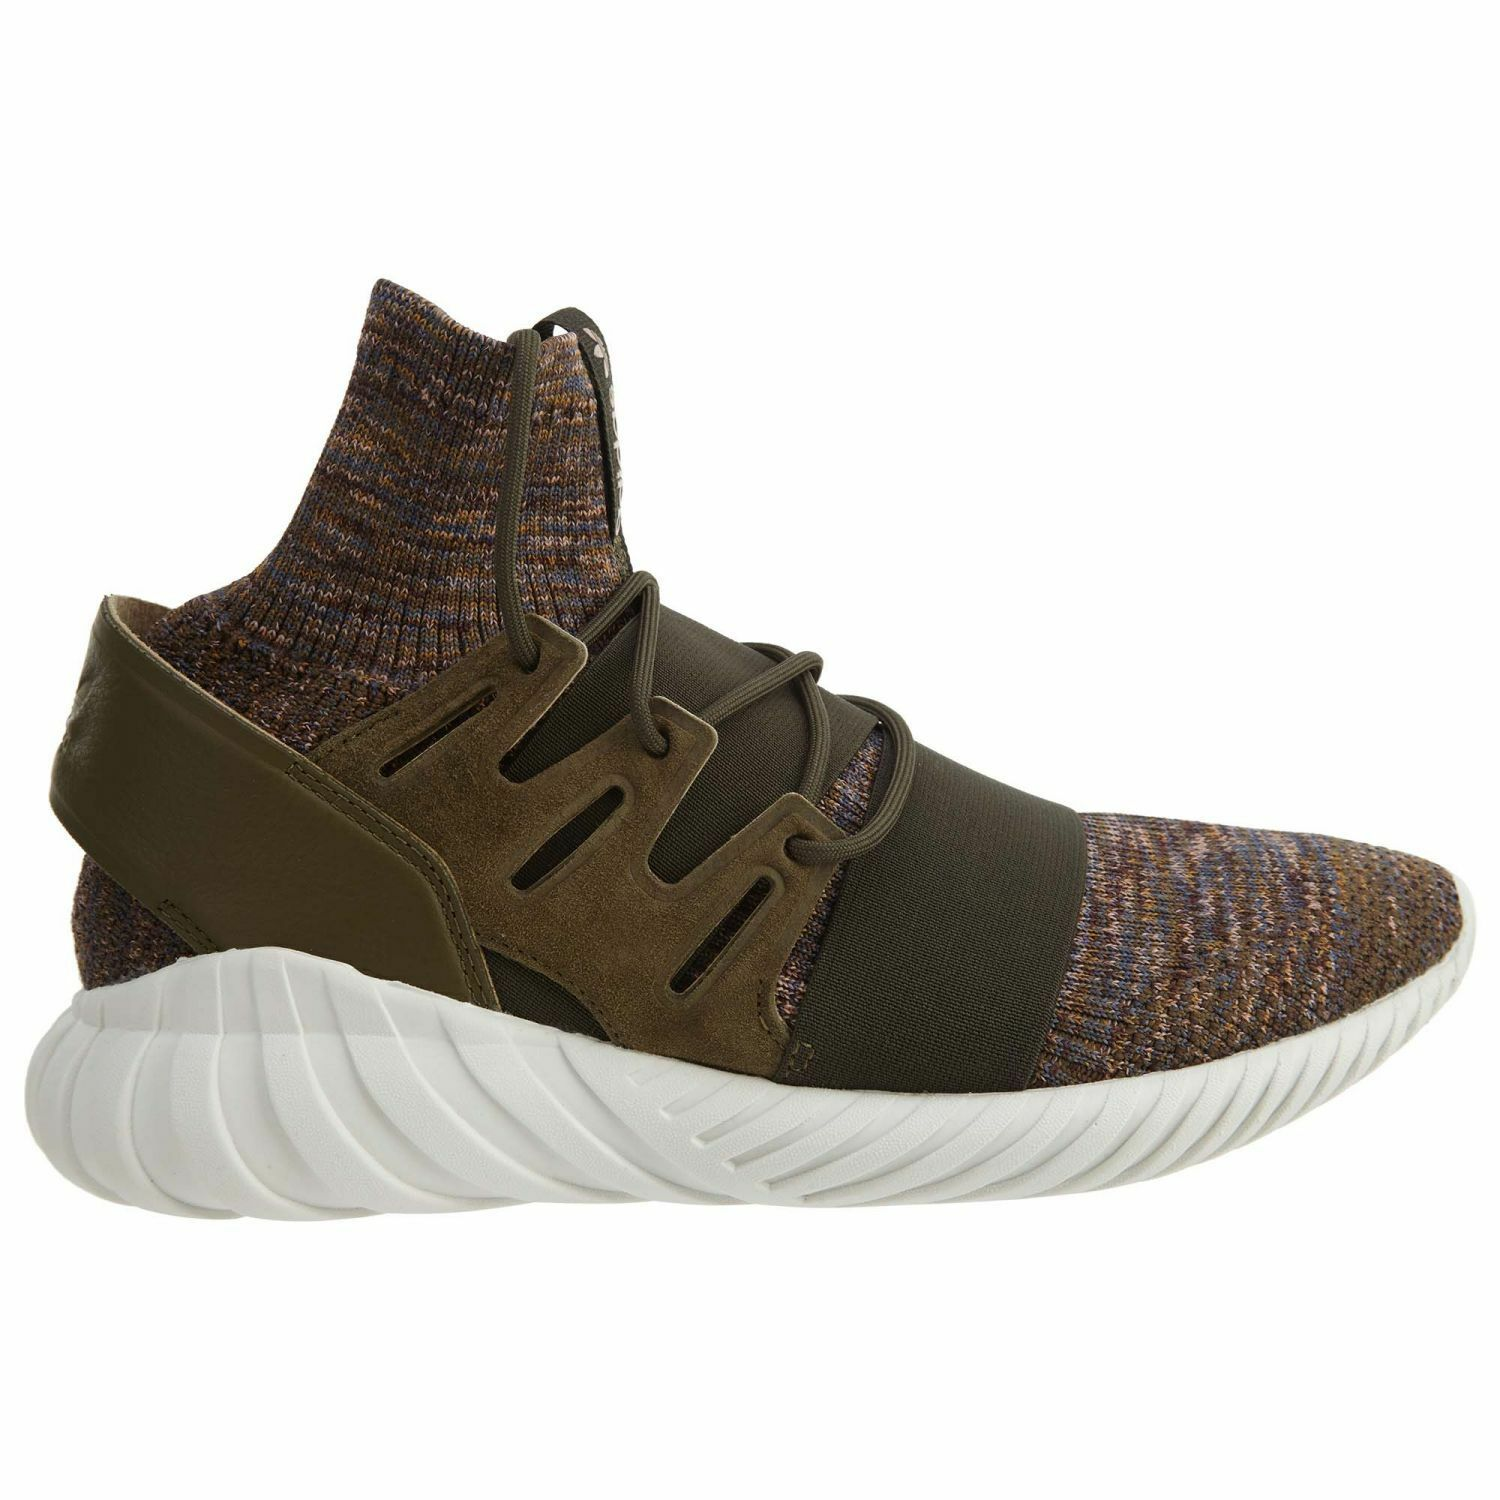 Adidas Tubular Doom PK Mens BY3551 Trace Olive Brown Primeknit Shoes Comfortable